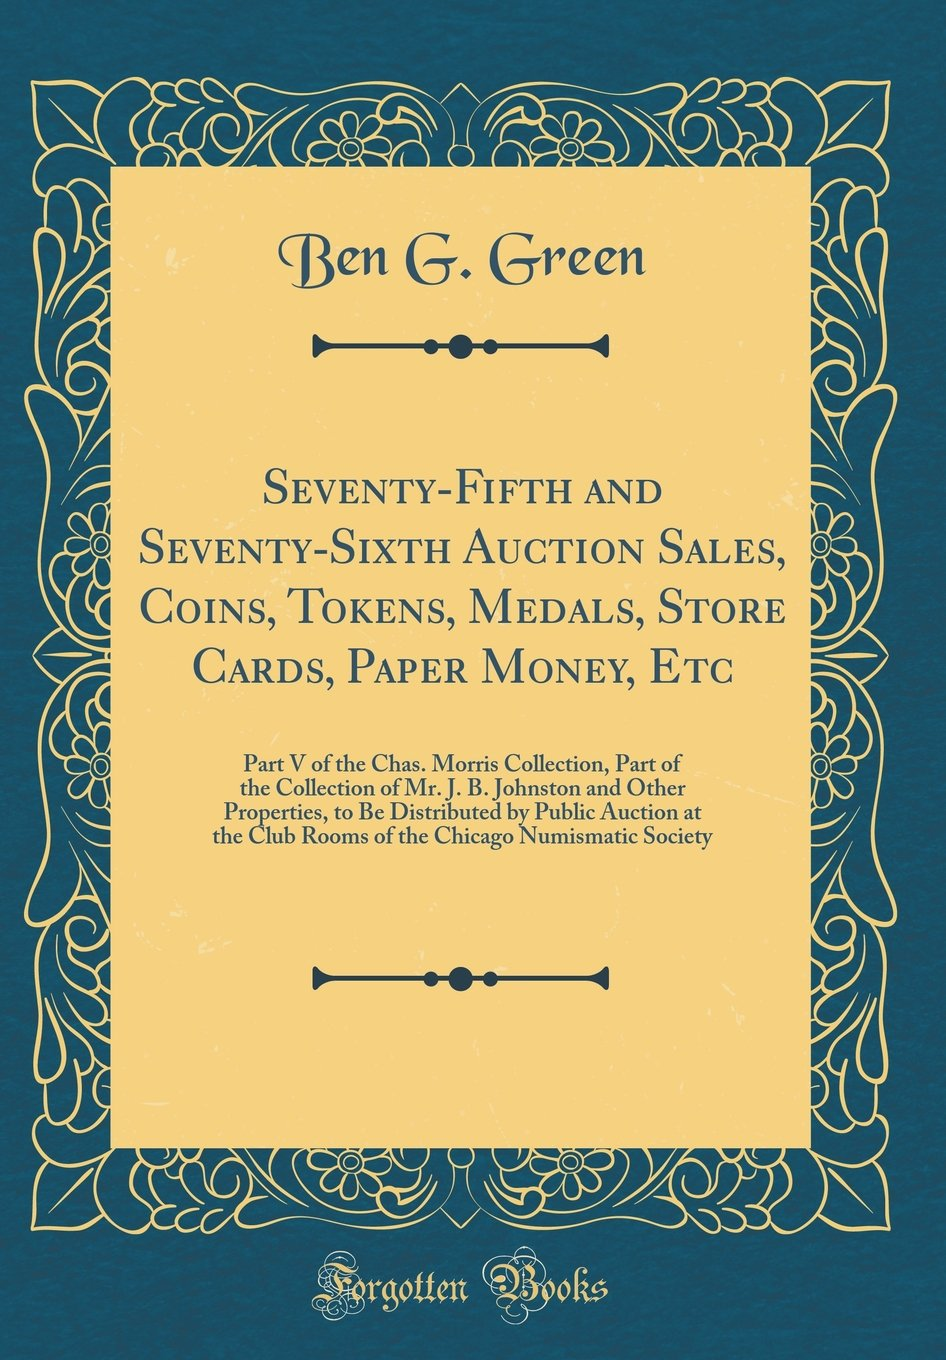 Seventy-Fifth and Seventy-Sixth Auction Sales, Coins, Tokens, Medals, Store Cards, Paper Money, Etc: Part V of the Chas. Morris Collection, Part of ... Be Distributed by Public Auction at the Club pdf